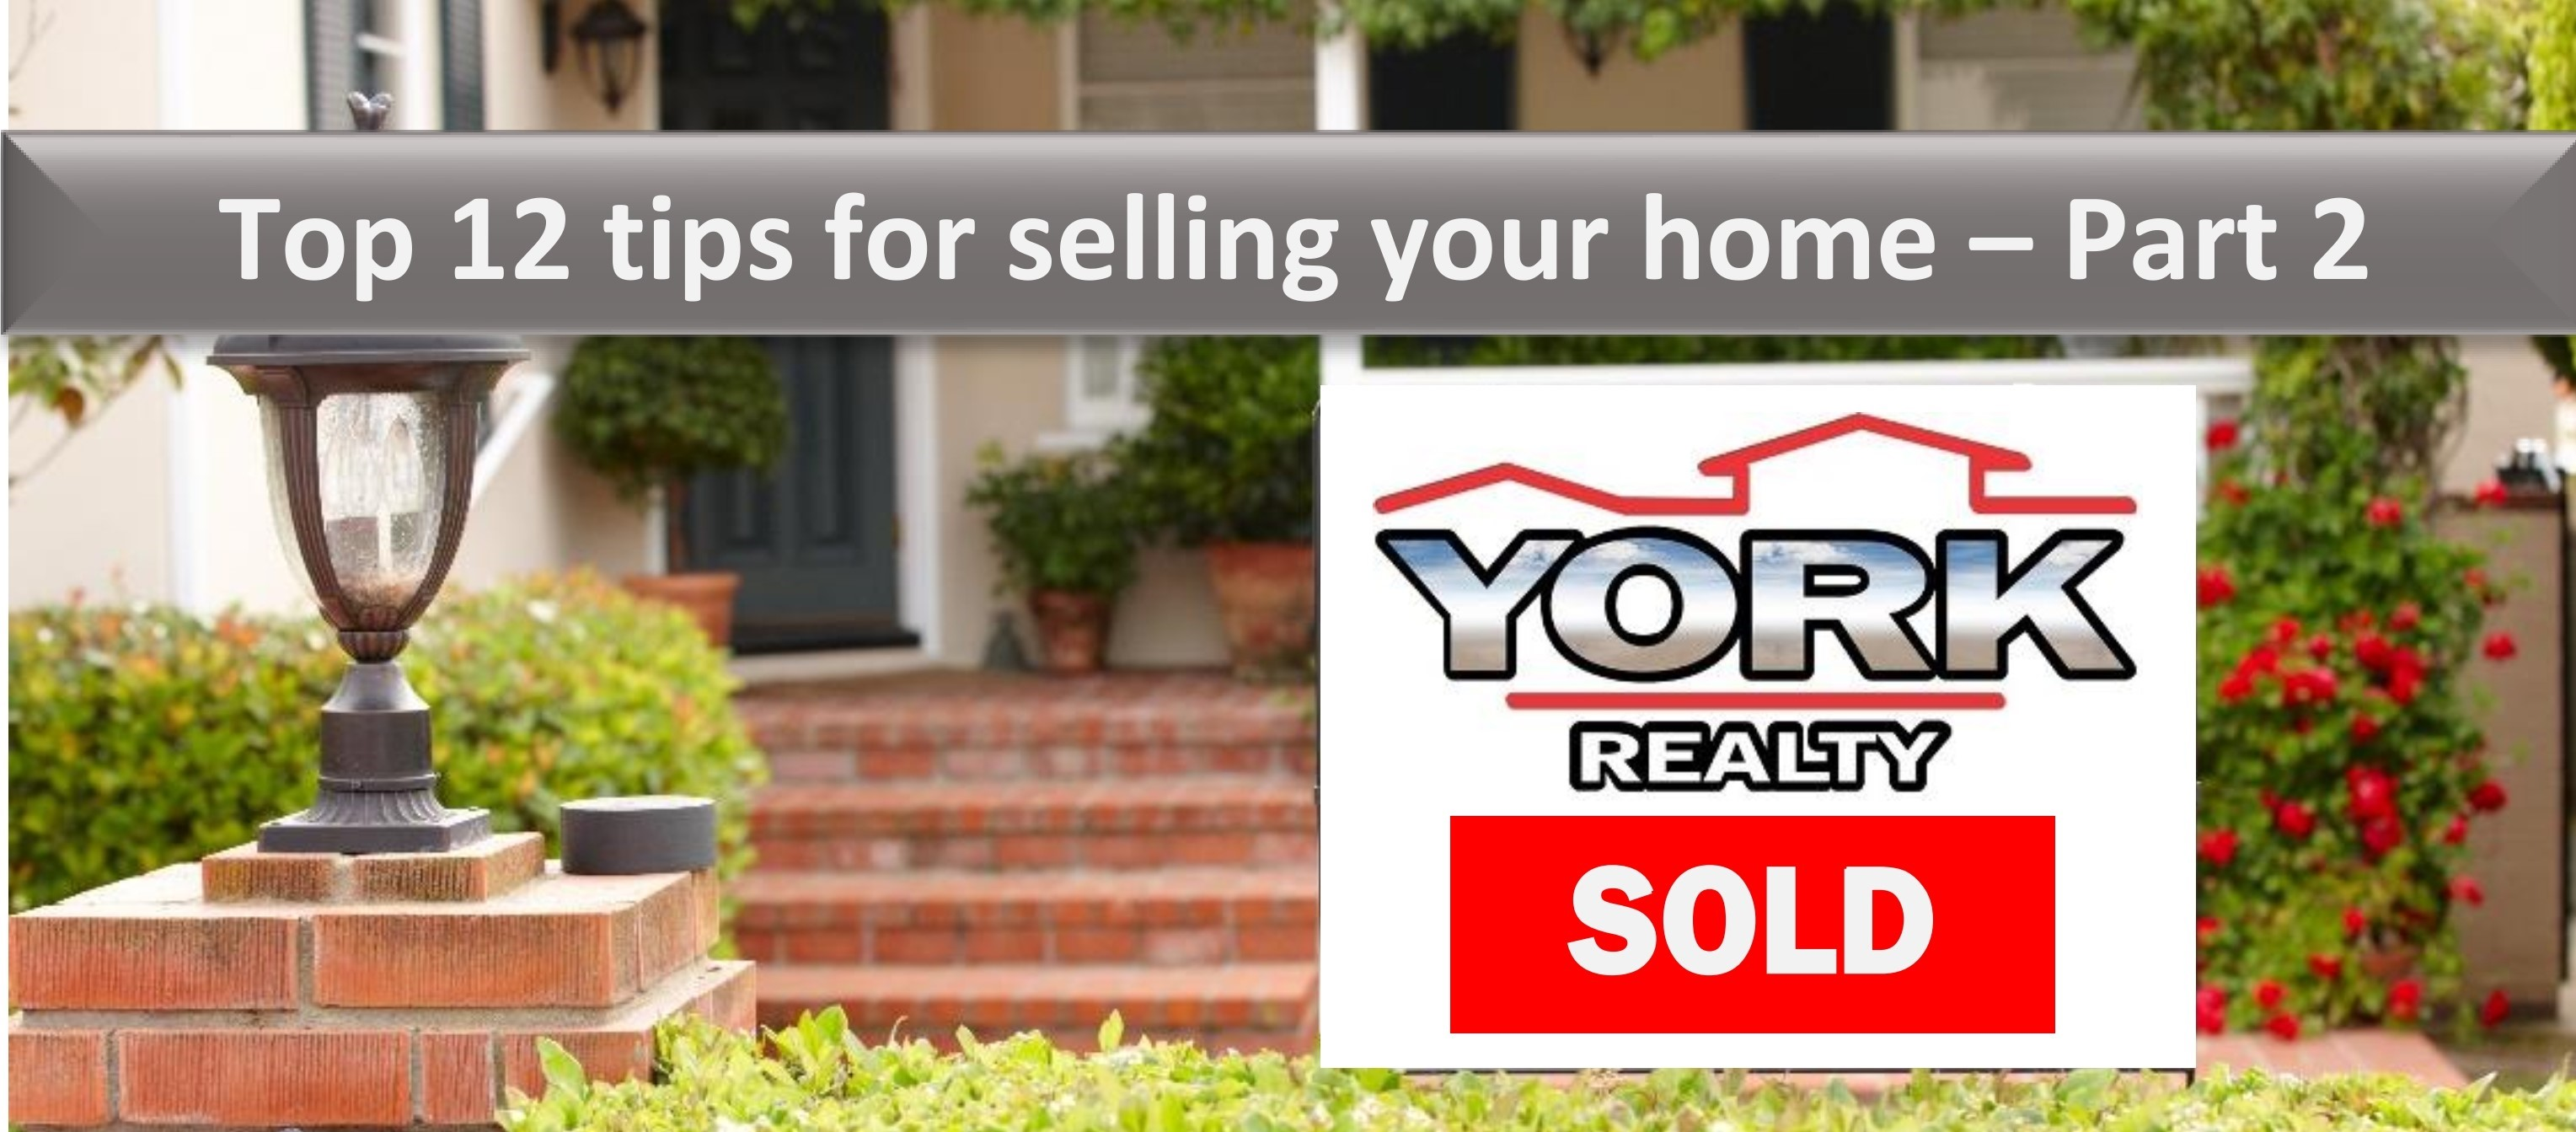 Top Tips for Selling Your Home - Part 2 - York Realty Tips For Selling Your Home on staging your home, unique ways to stage your home, selling a home, buying your home,